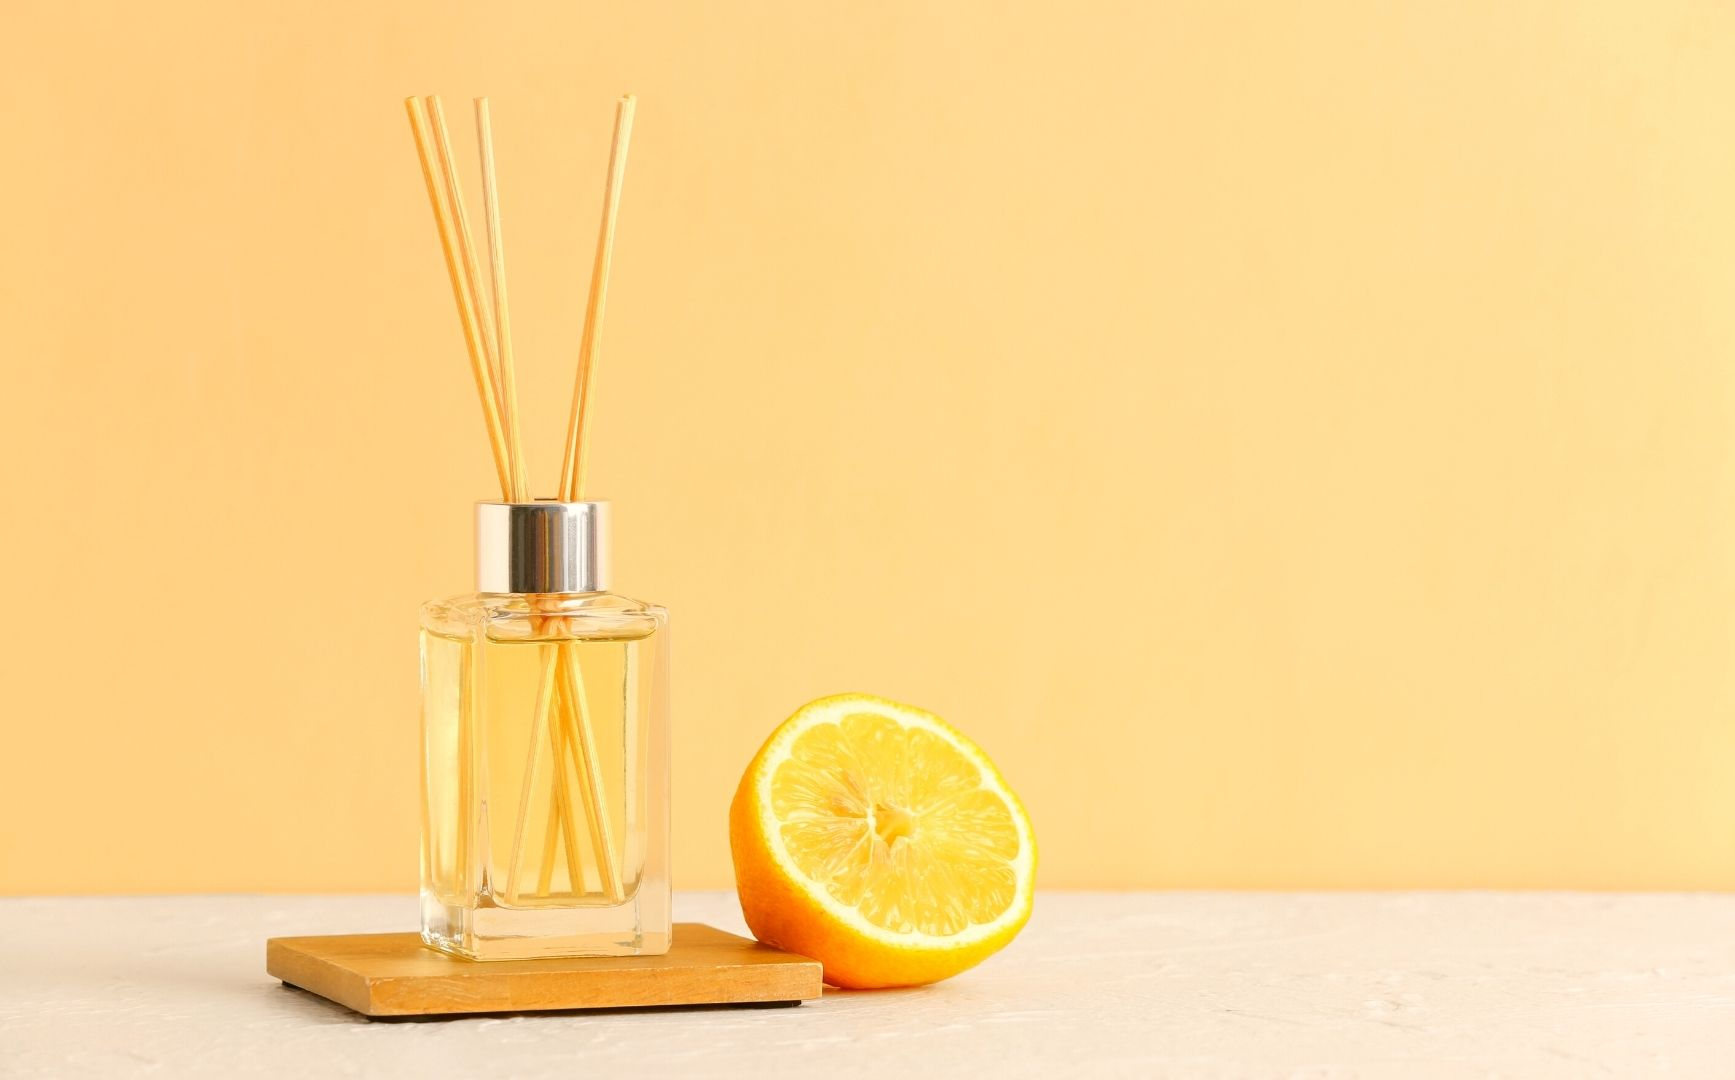 Citrus smell associated with lemons and yellow